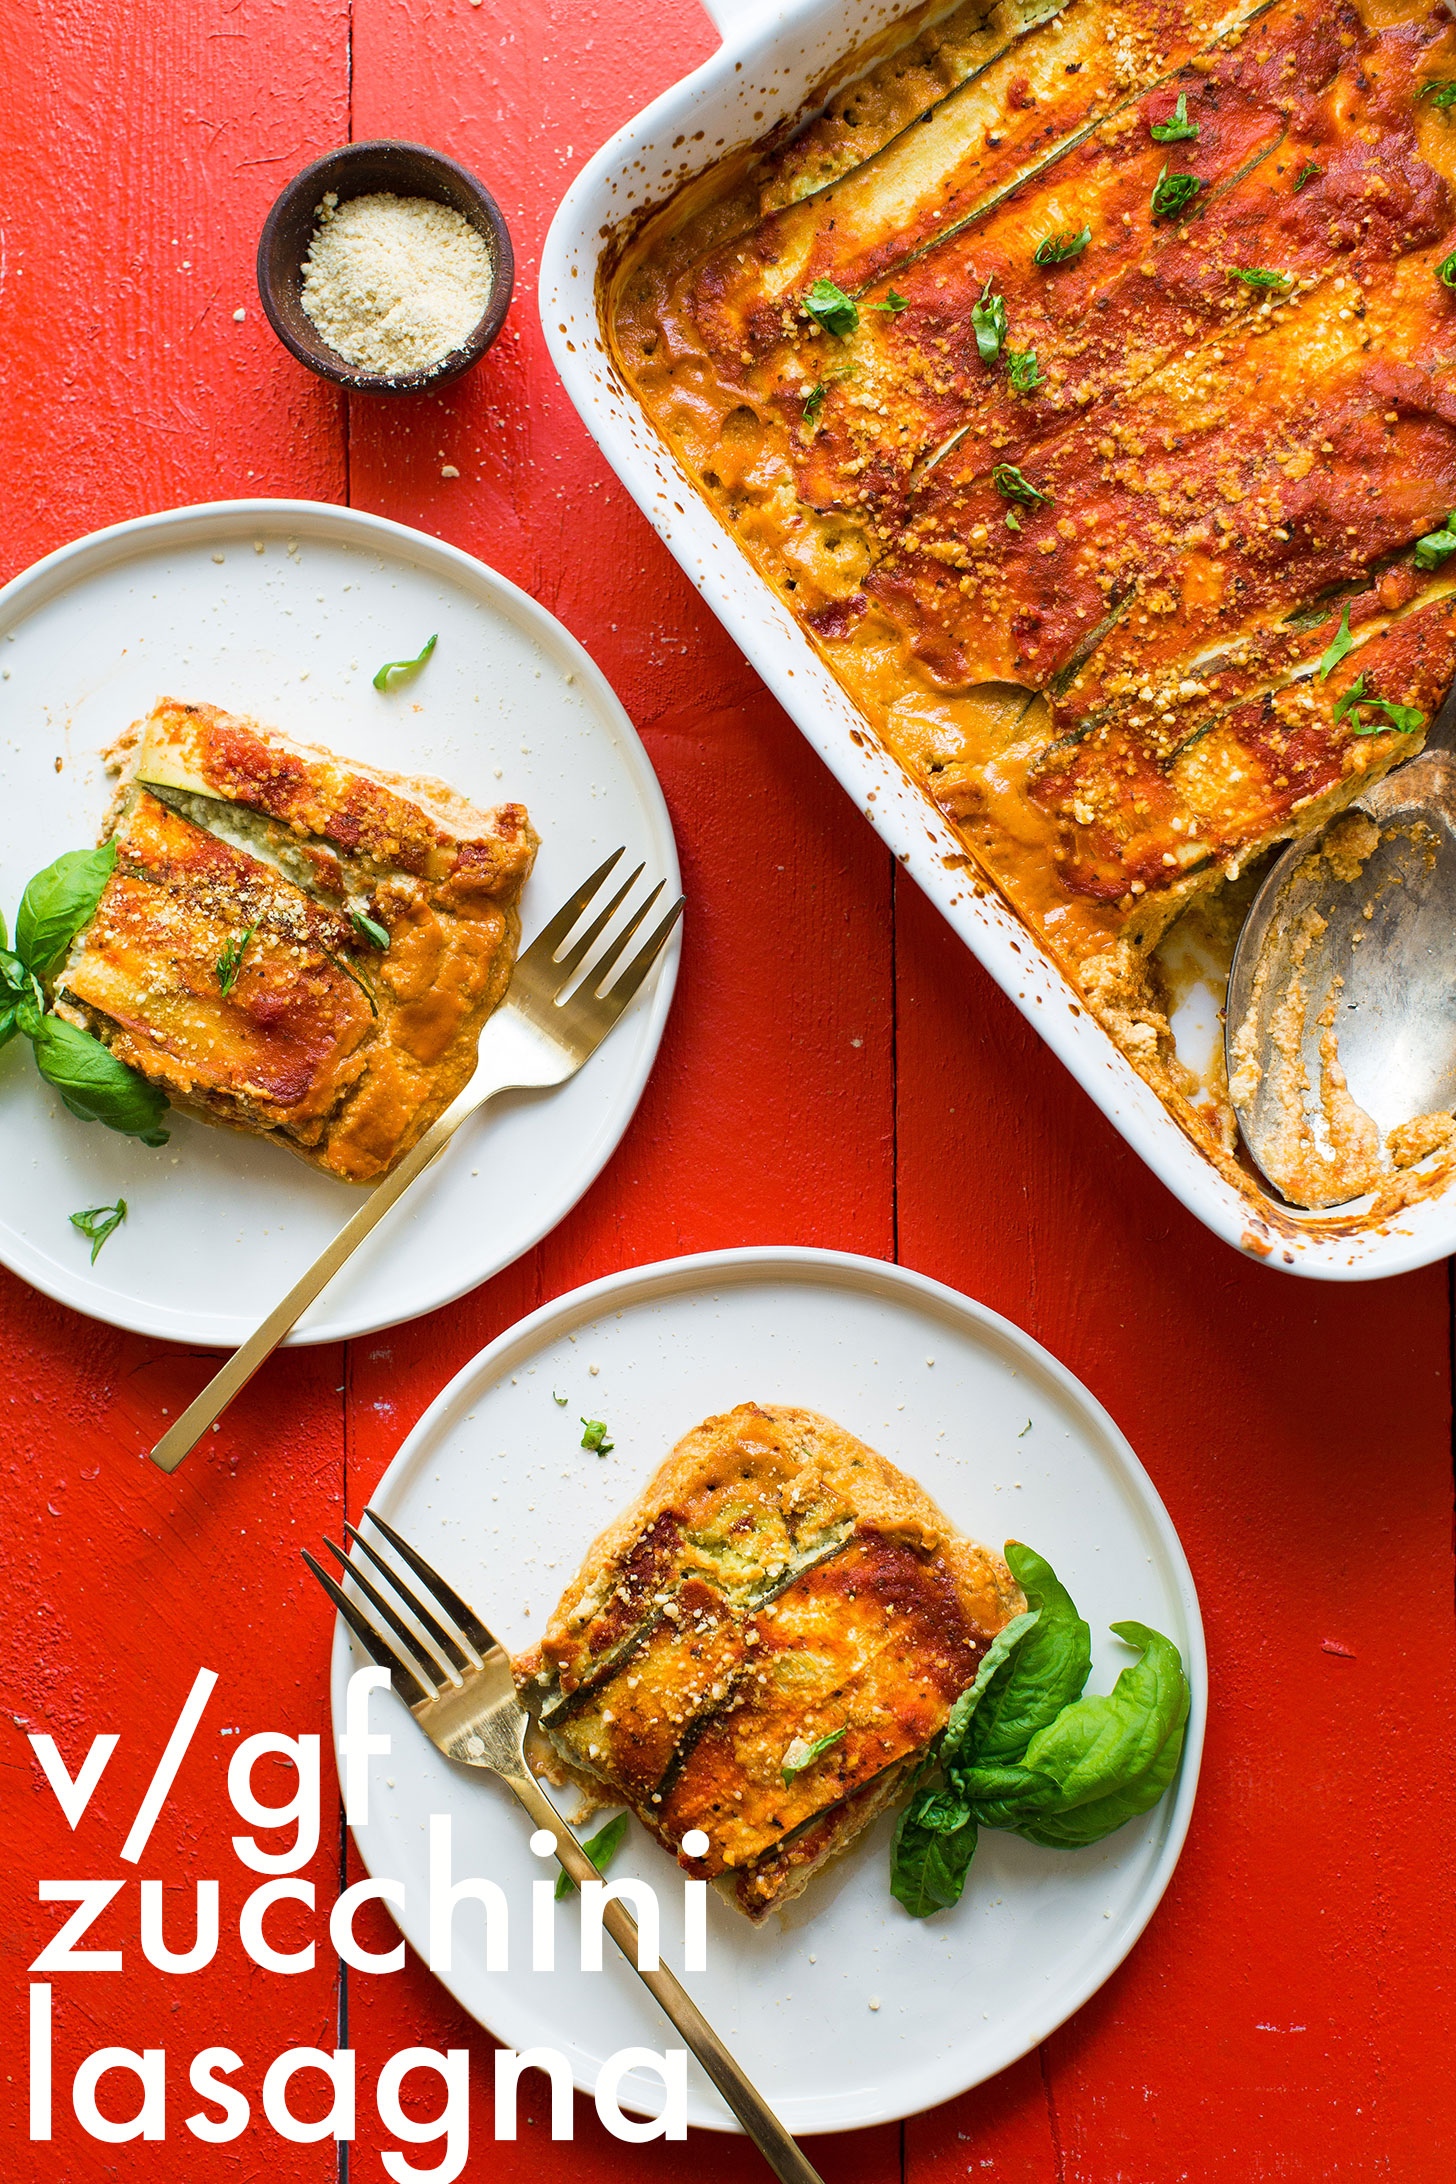 Two servings of gluten-free vegan zucchini lasagna on dinner plates  sc 1 st  Minimalist Baker & Vegan Gluten-Free Zucchini Lasagna | Minimalist Baker Recipes